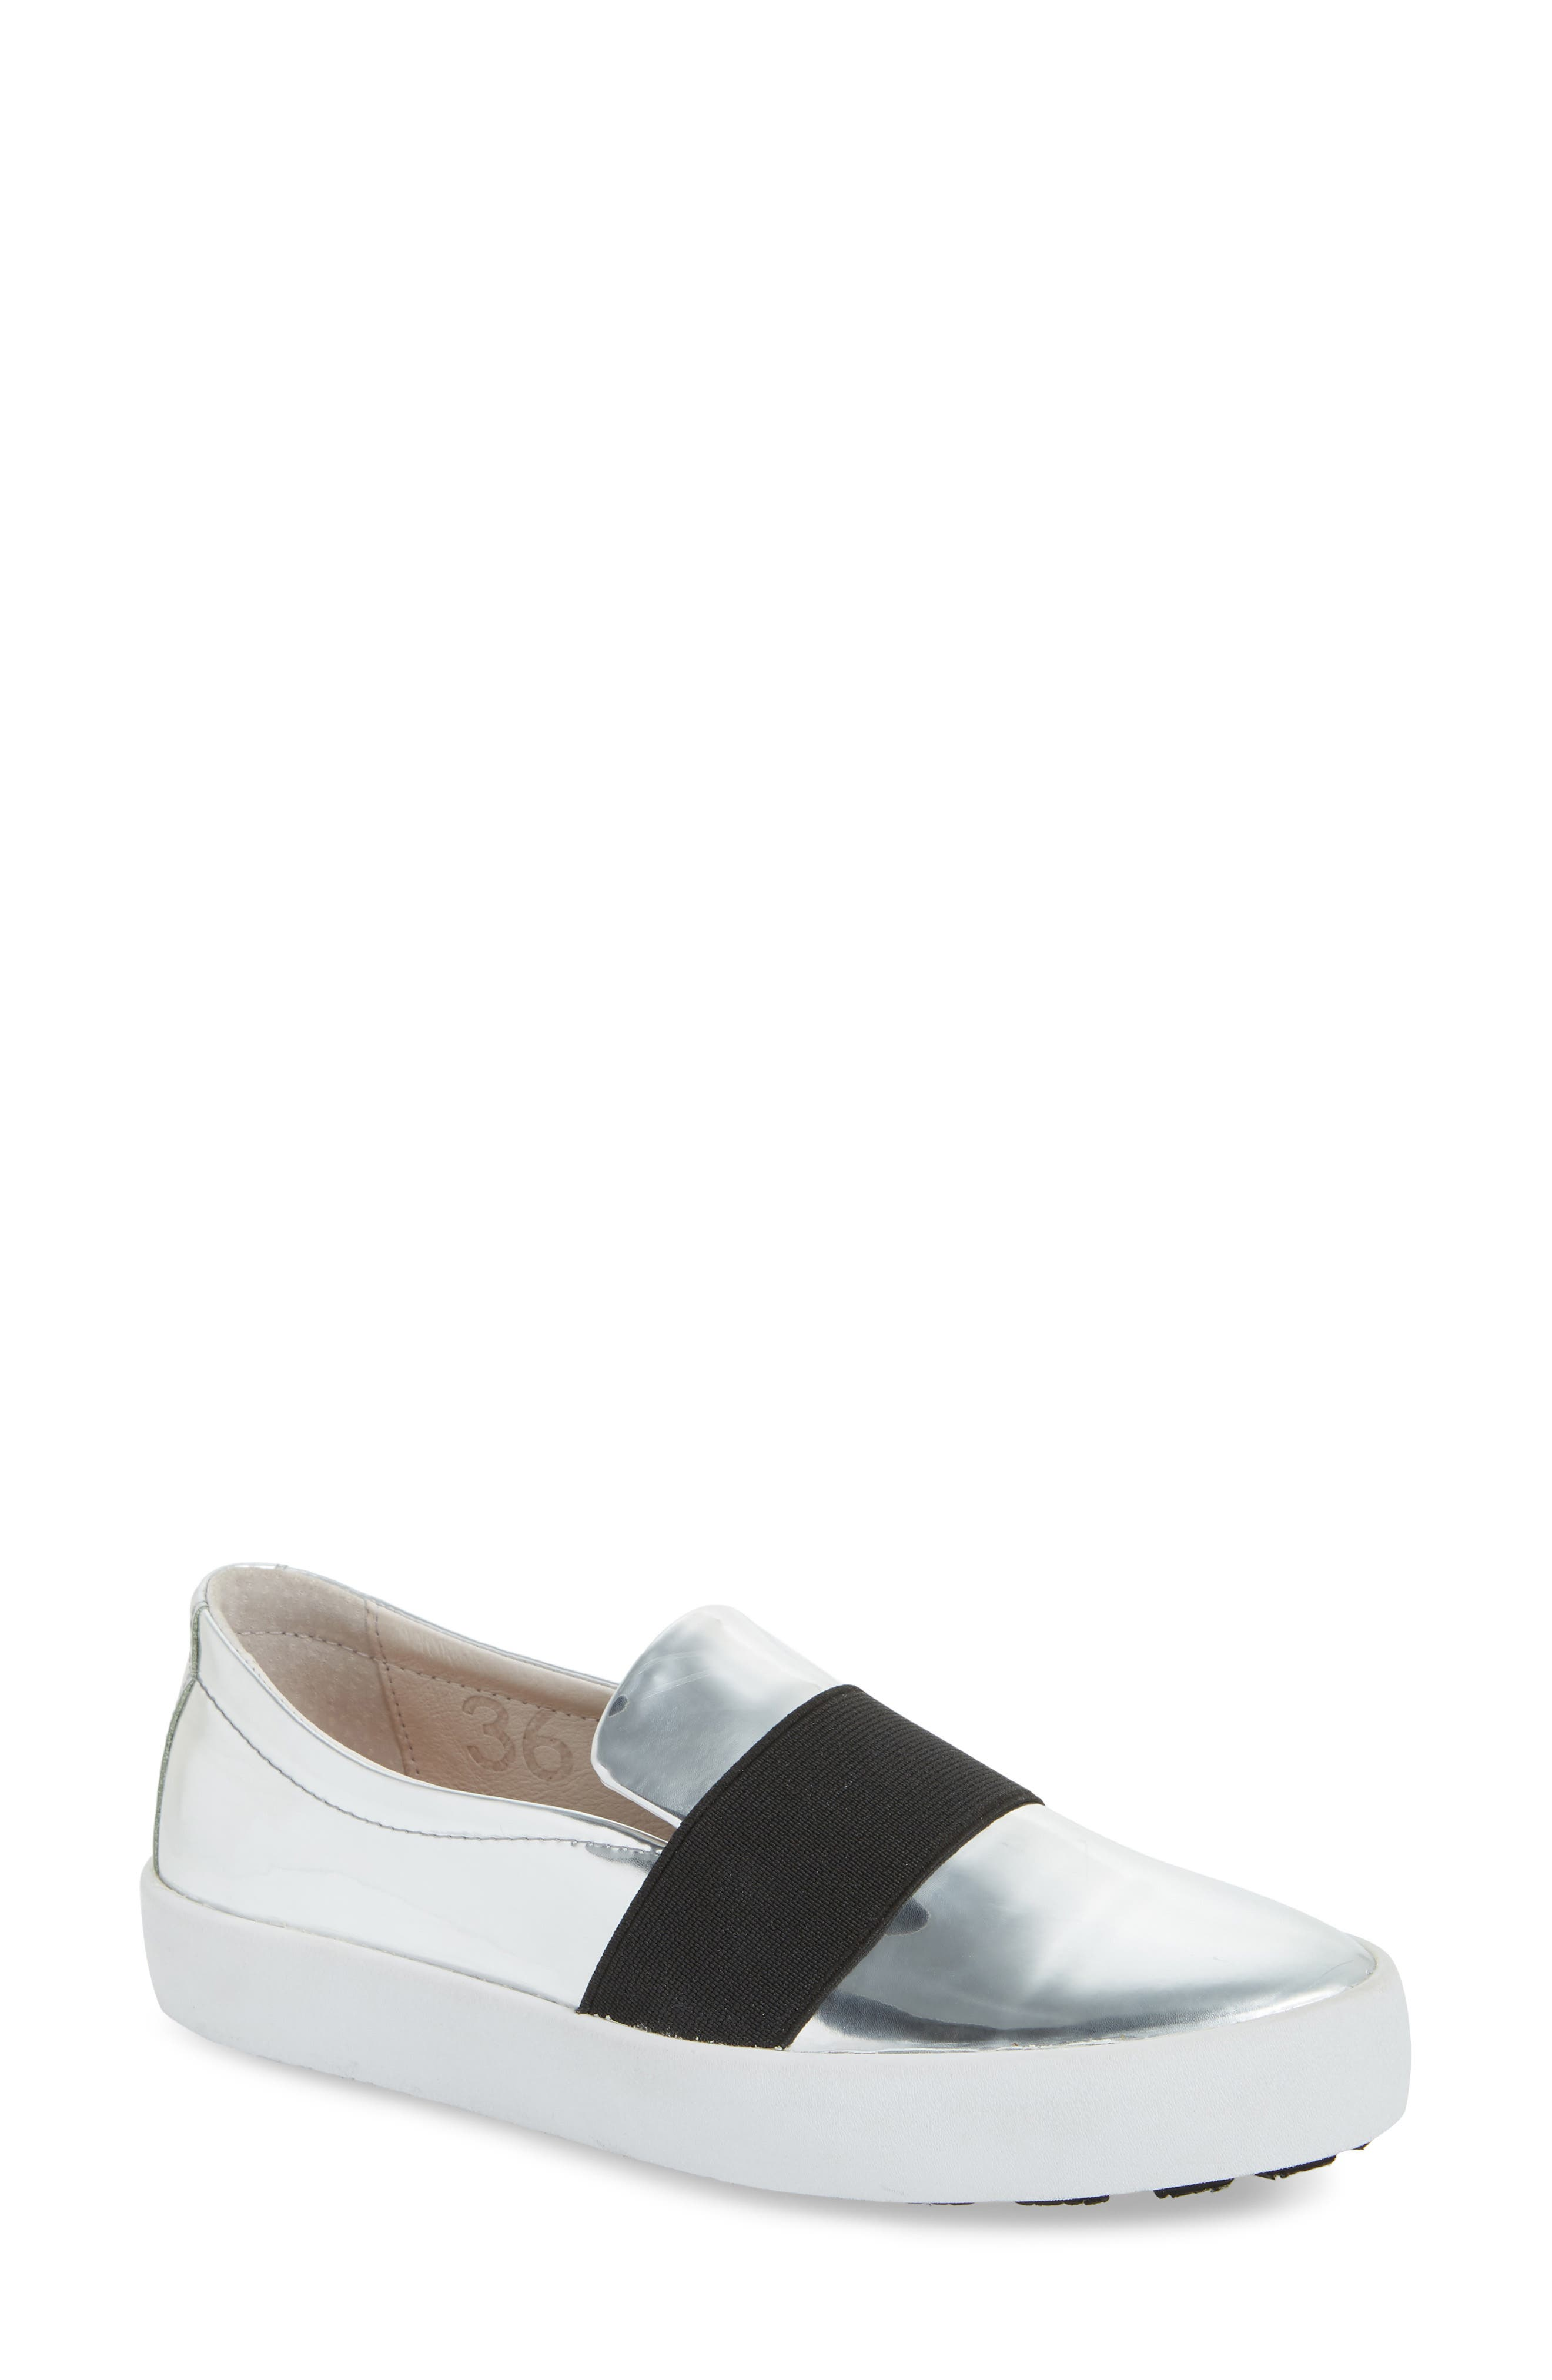 PL99 Slip-On Sneaker,                             Main thumbnail 1, color,                             Silver Leather